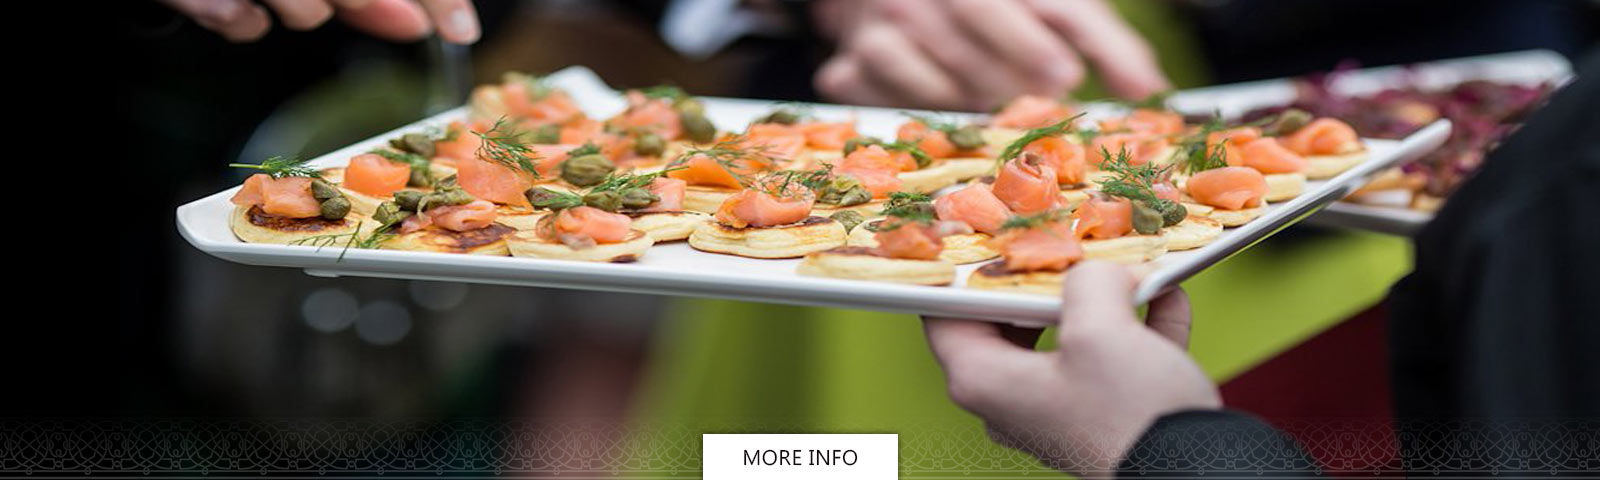 Salmon and capers horderves on a serving tray held by a waiter